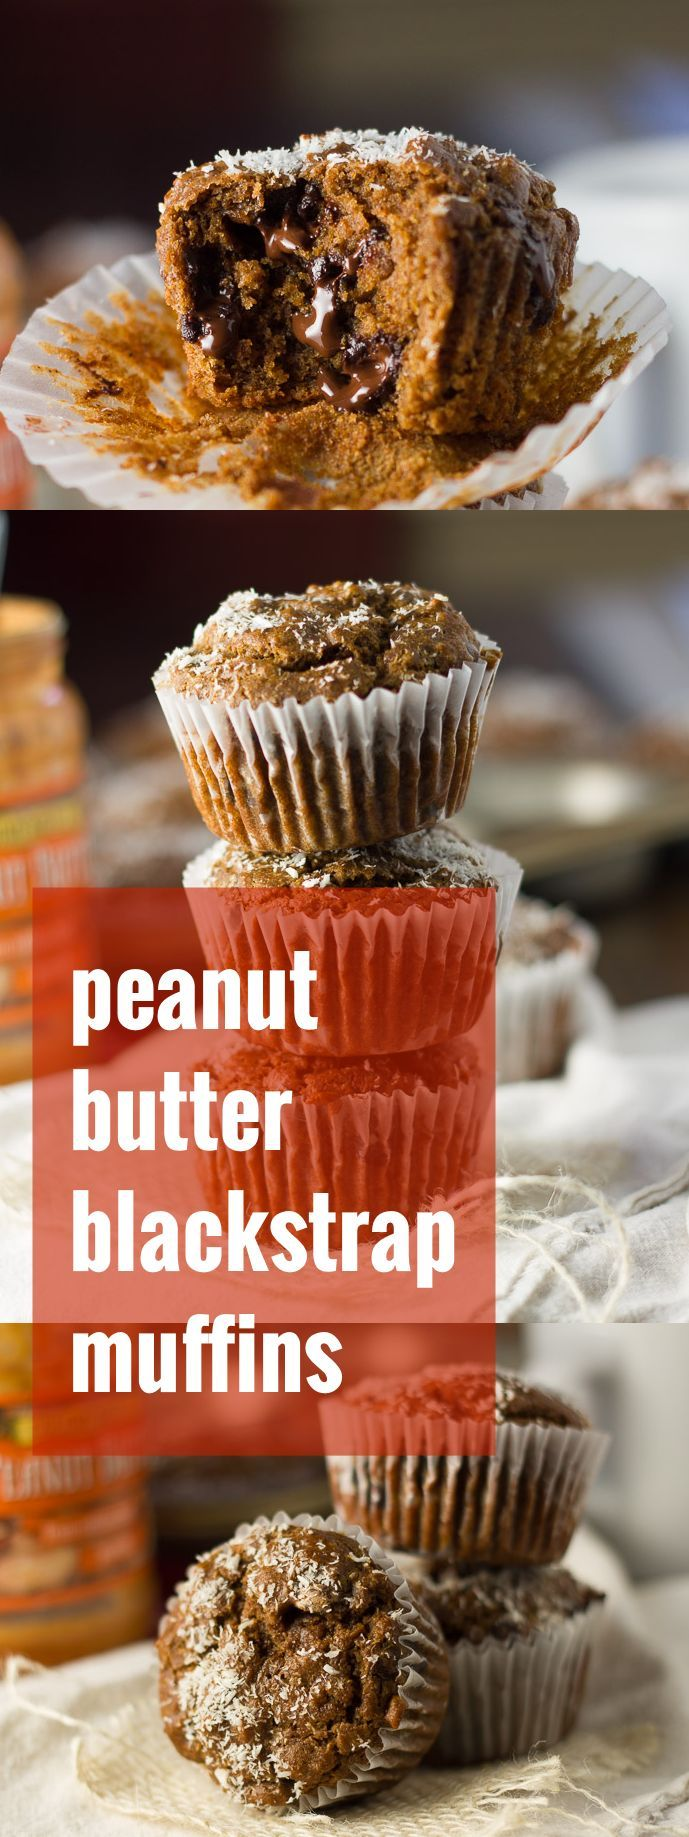 Made with creamy peanut butter, infused with spices, and studded with dark chocolate chips, these vegan blackstrap molasses muffins are sure to become an instant favorite!